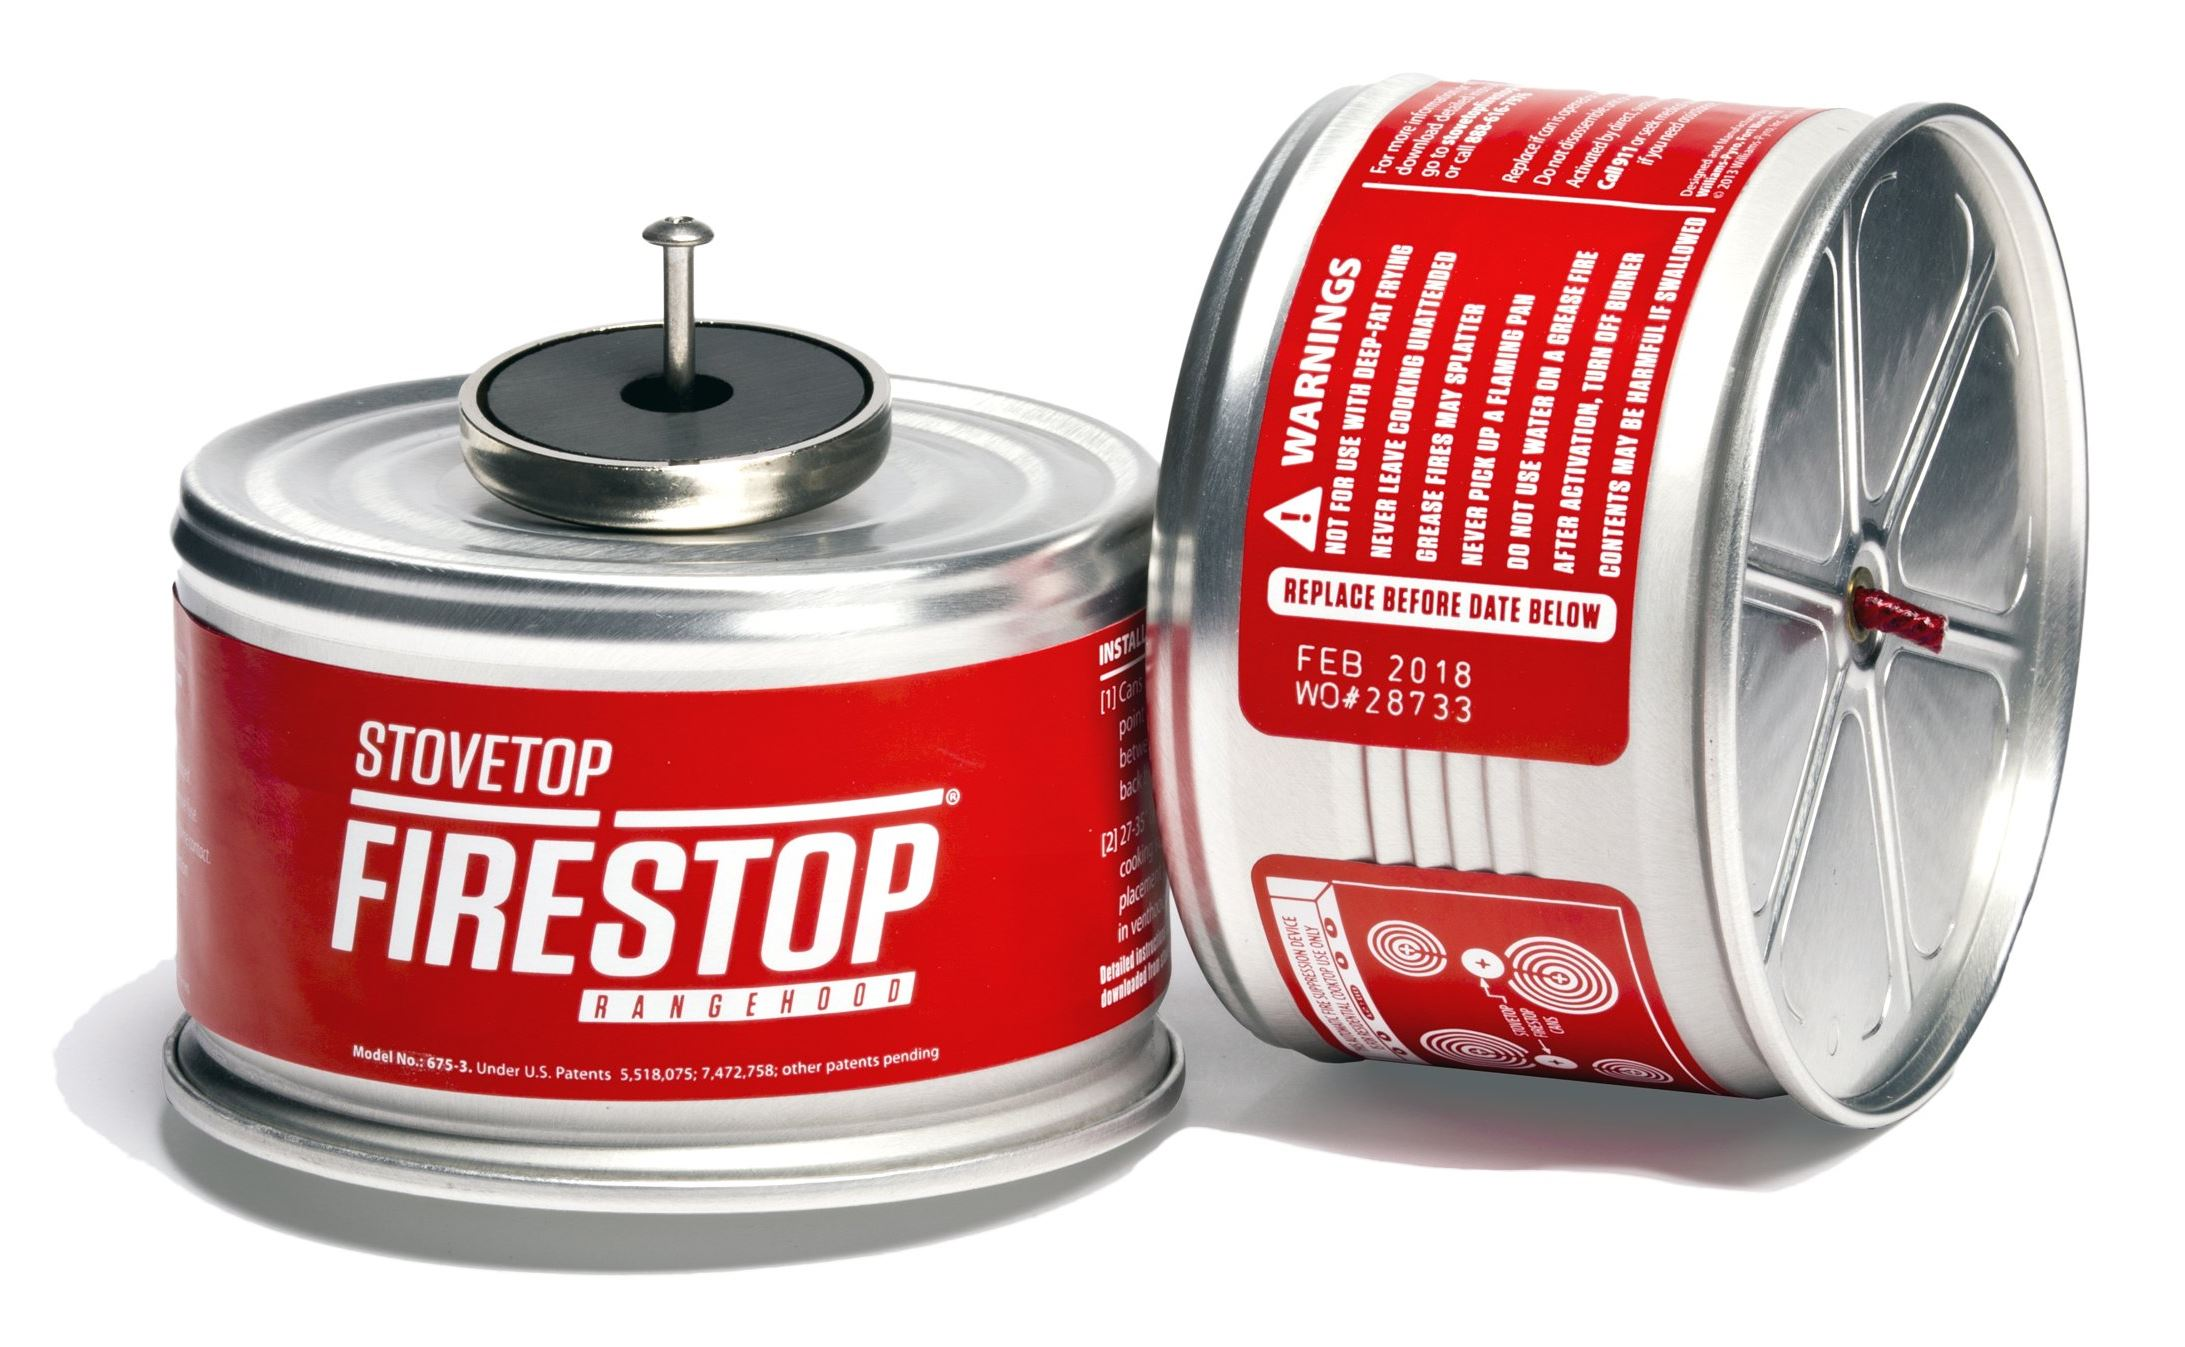 20140403firestop Firestop, a device that sprays a chemical fire suppressant if it senses a fire on your stovetop (it attaches to the range hood or microwave).